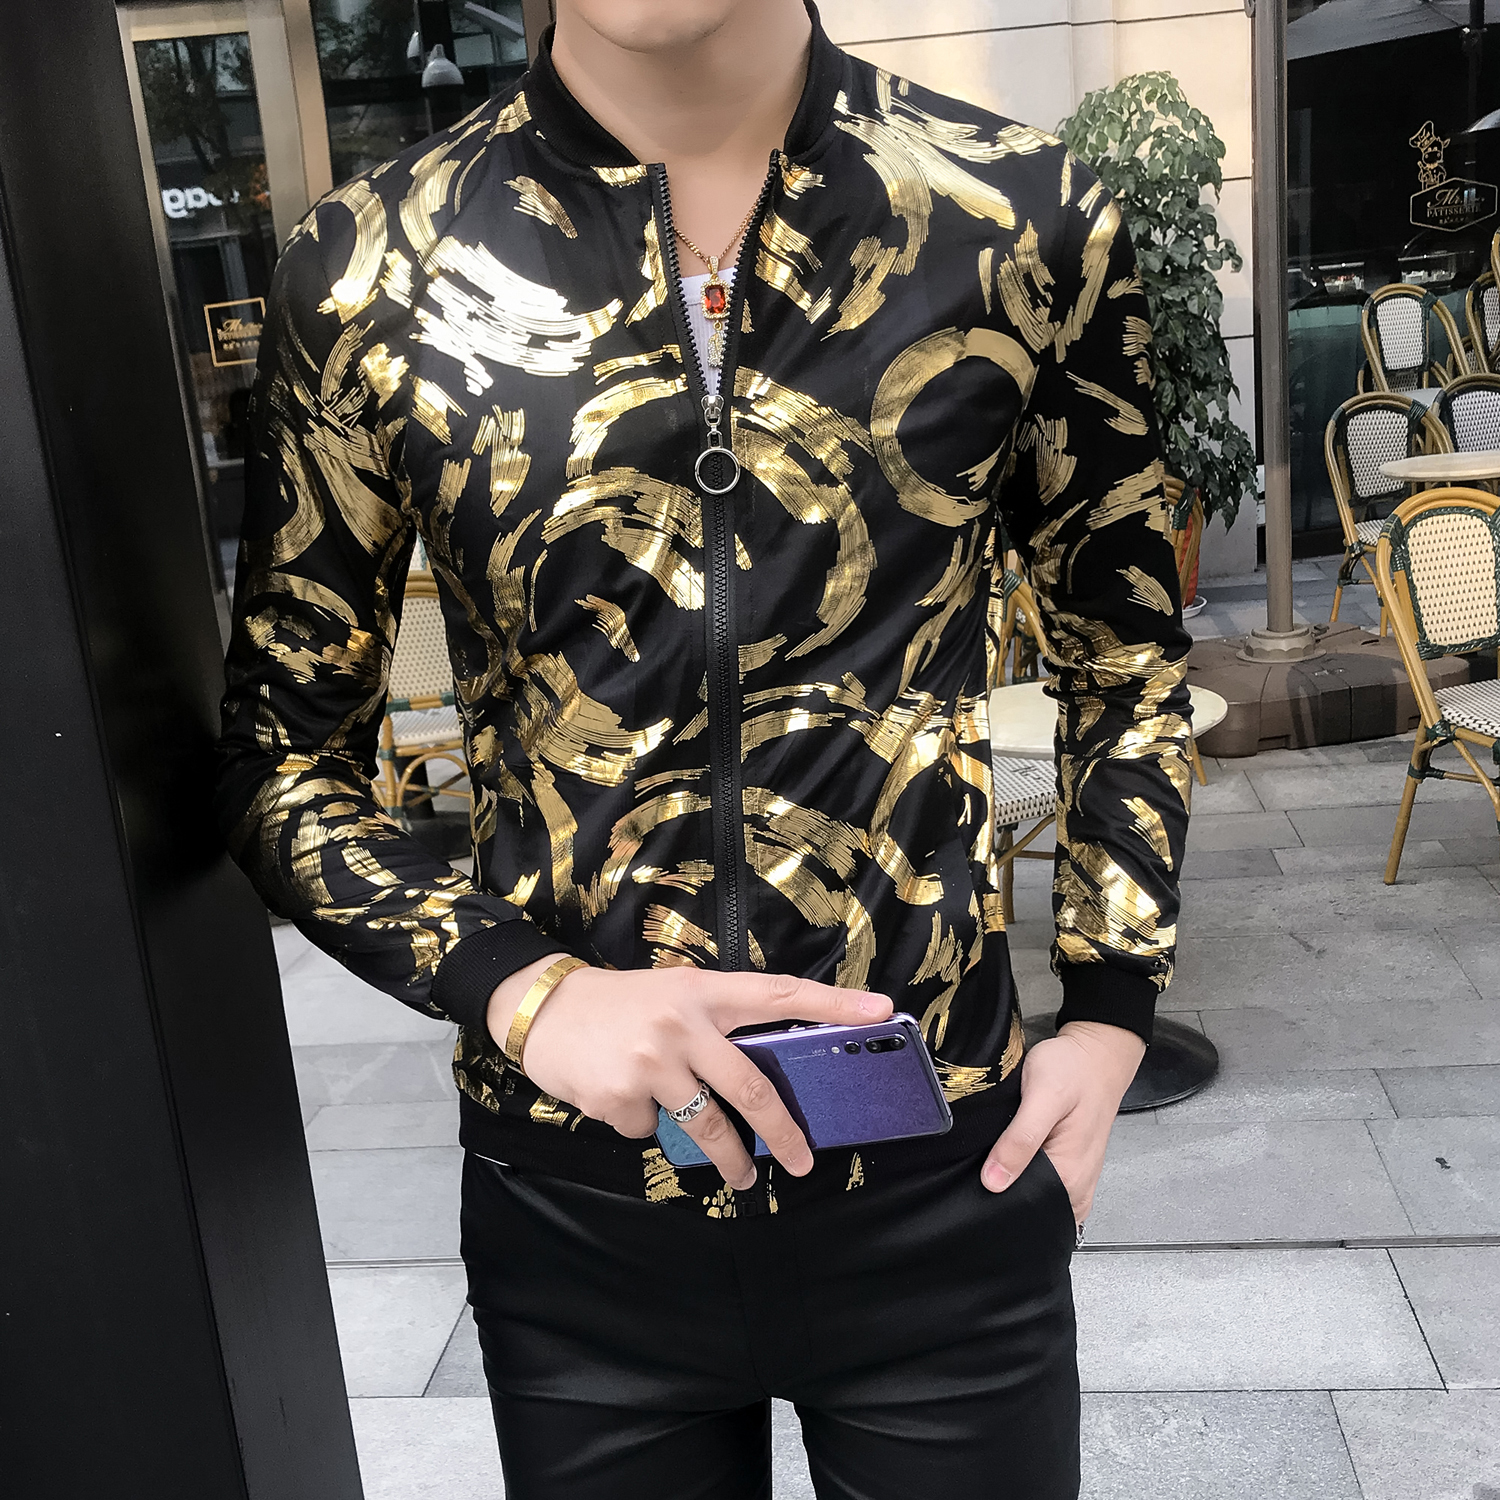 Summer Gold Black Silver Baseball Jacket Men Bomber Print Jacket Men Chaqueta Hombre Fashion Prom Club Party Sunscreen Jackets(China)